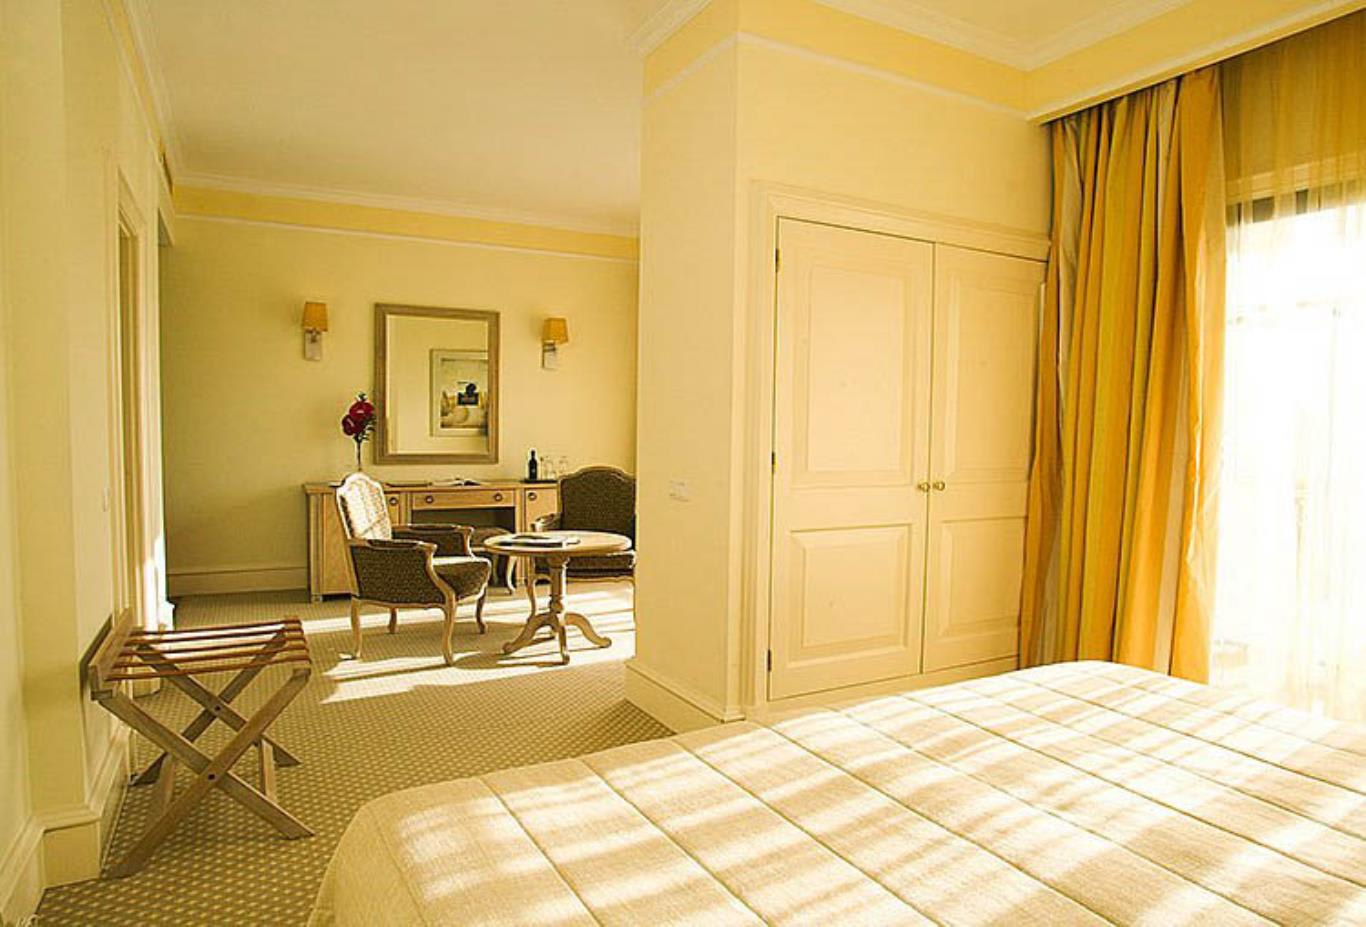 Suite with bed and sitting area - style will vary